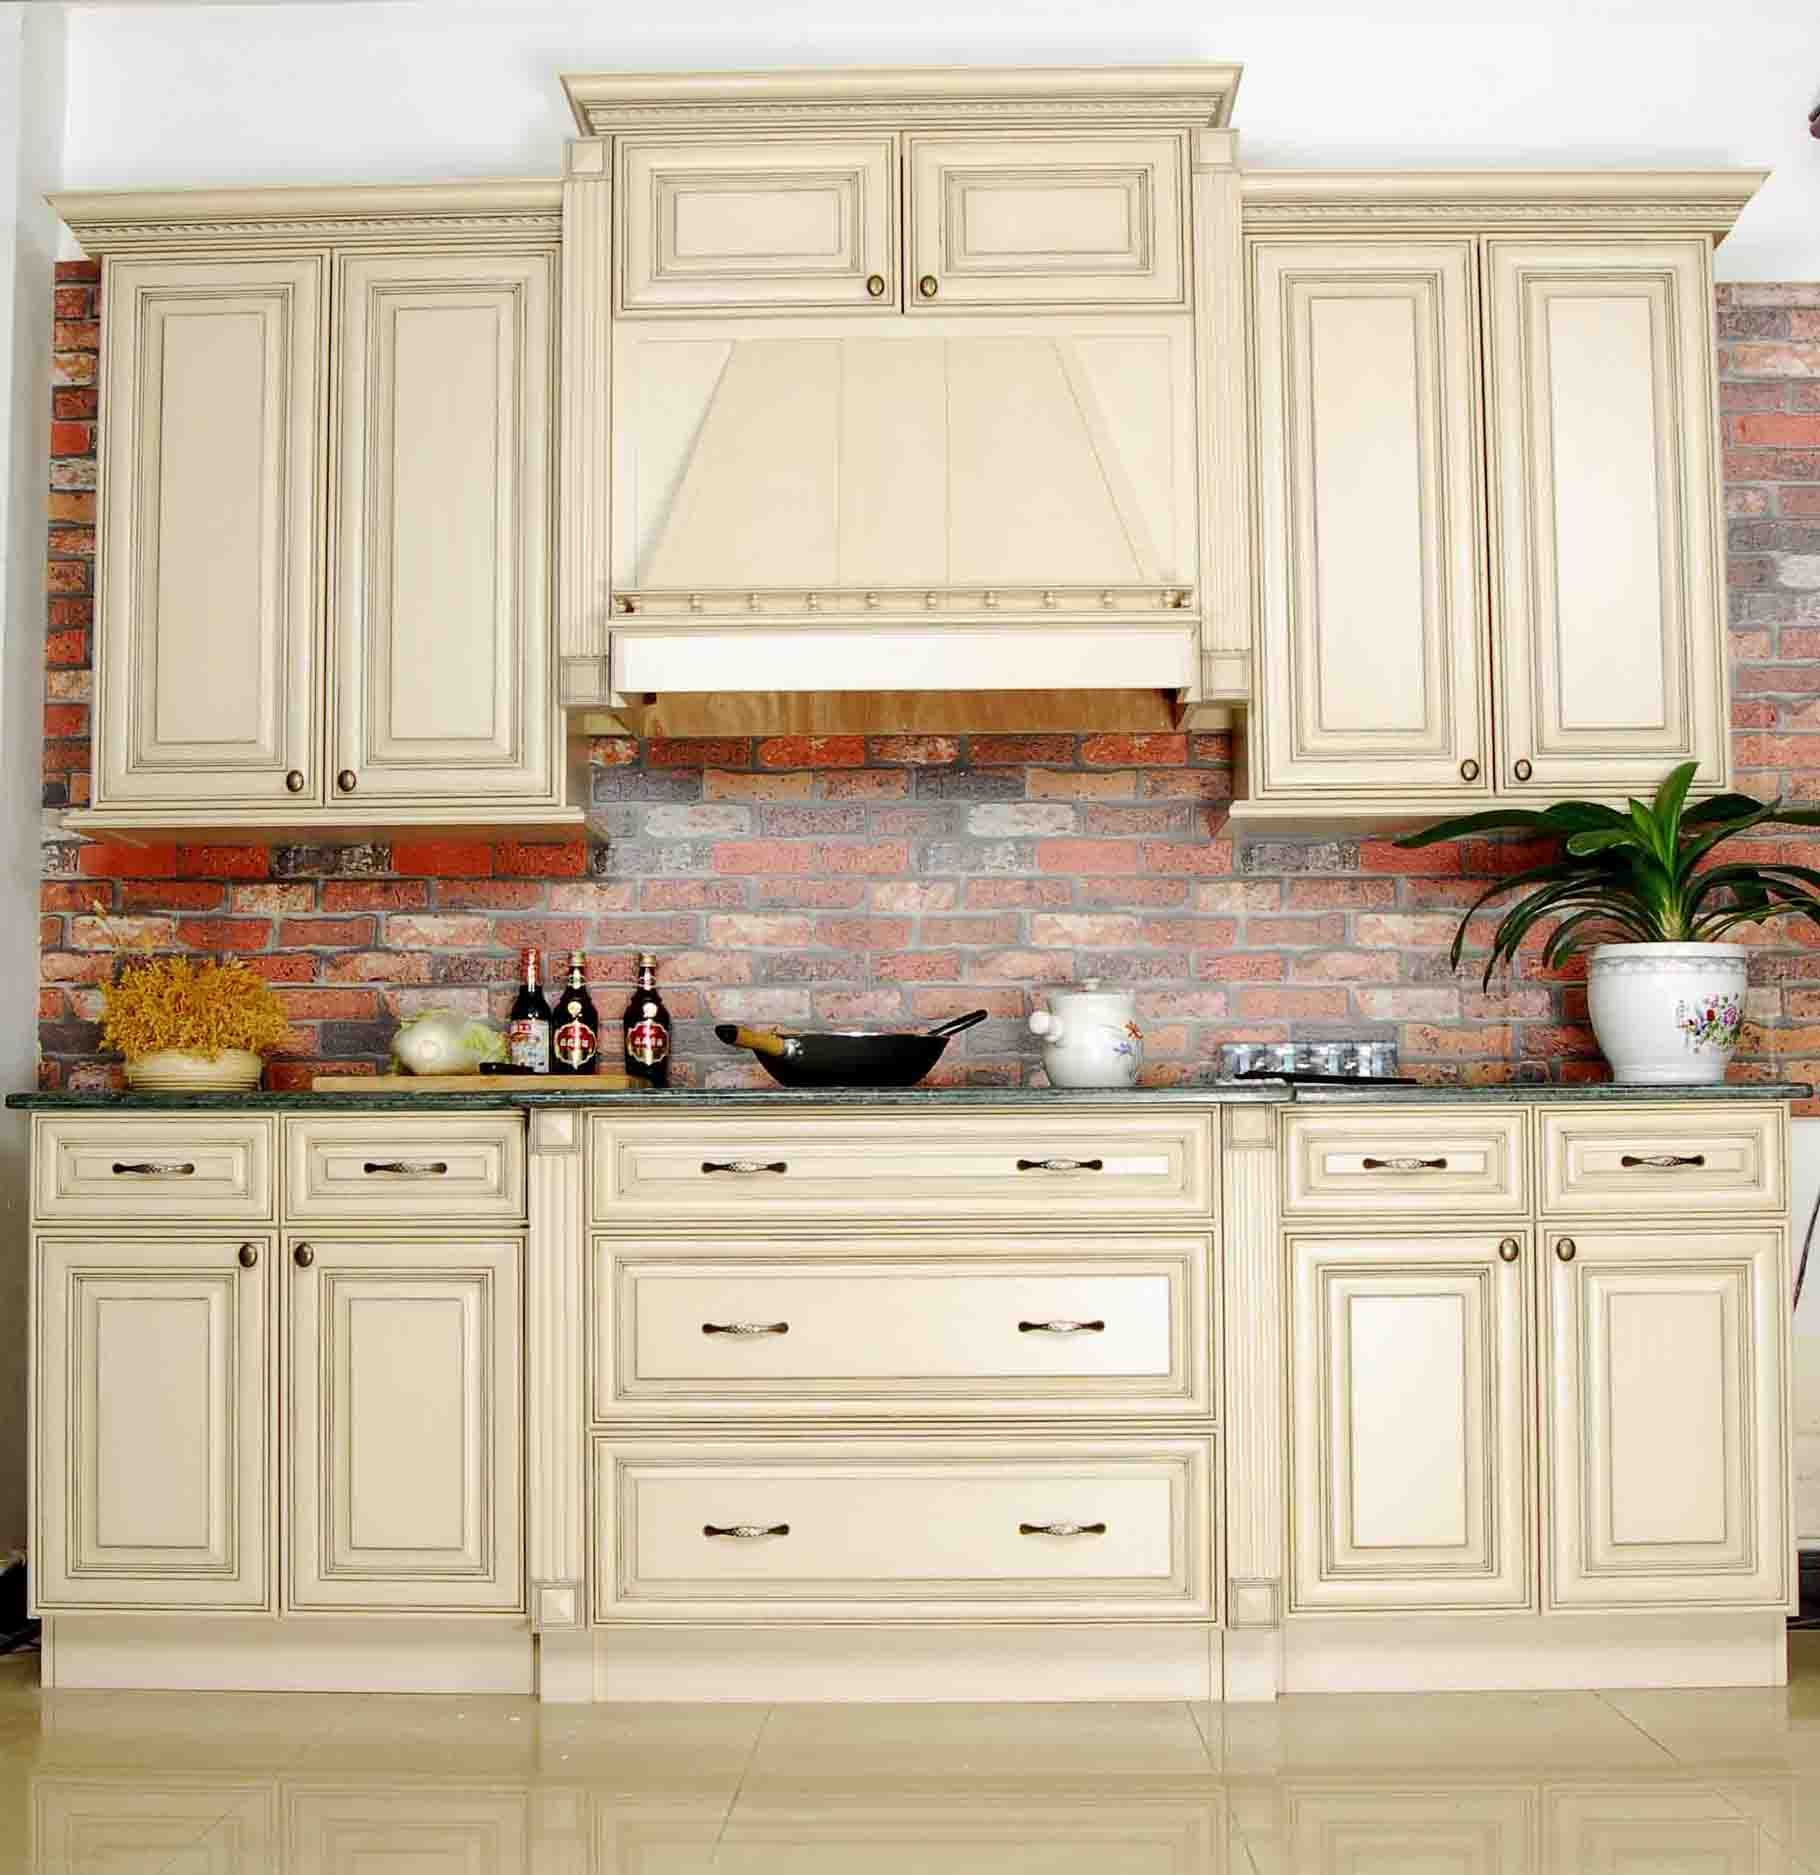 French Provincial Kitchen Ideas: Affordable French Provincial Solid Kitchen Cabinets Ideas